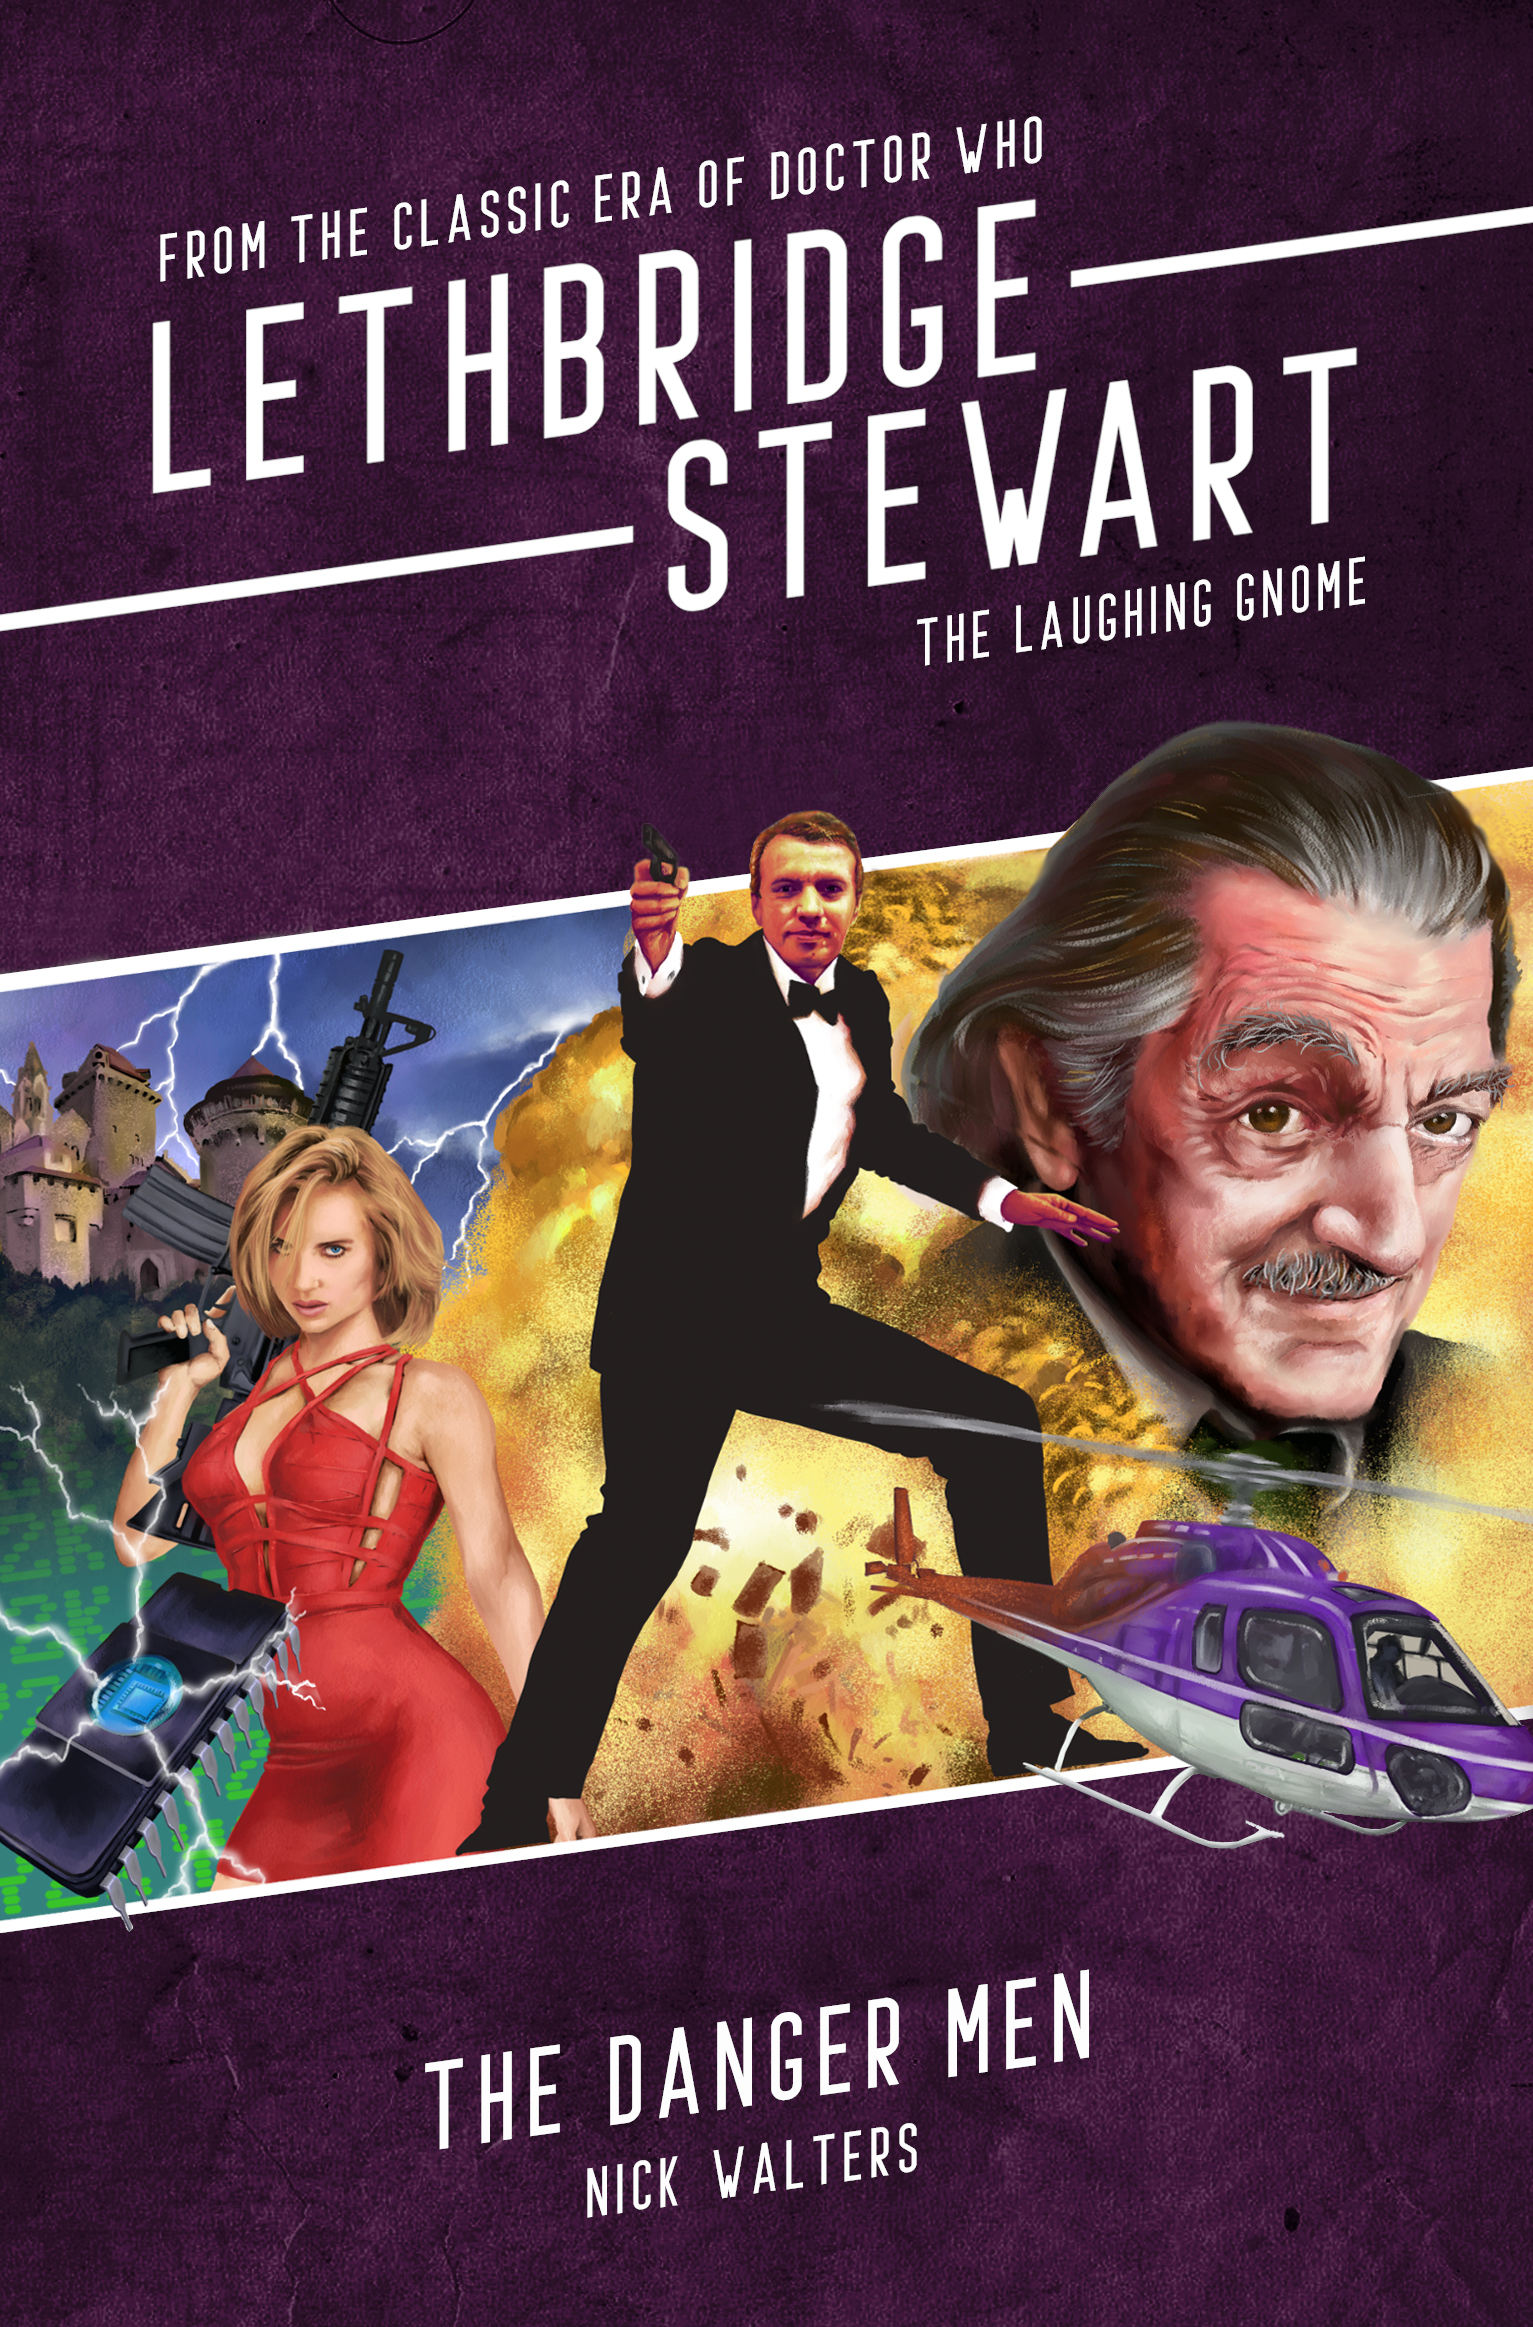 Lethbridge-Stewart: The Laughing Gnome: The Danger Men (Credit: Candy Jar Books)